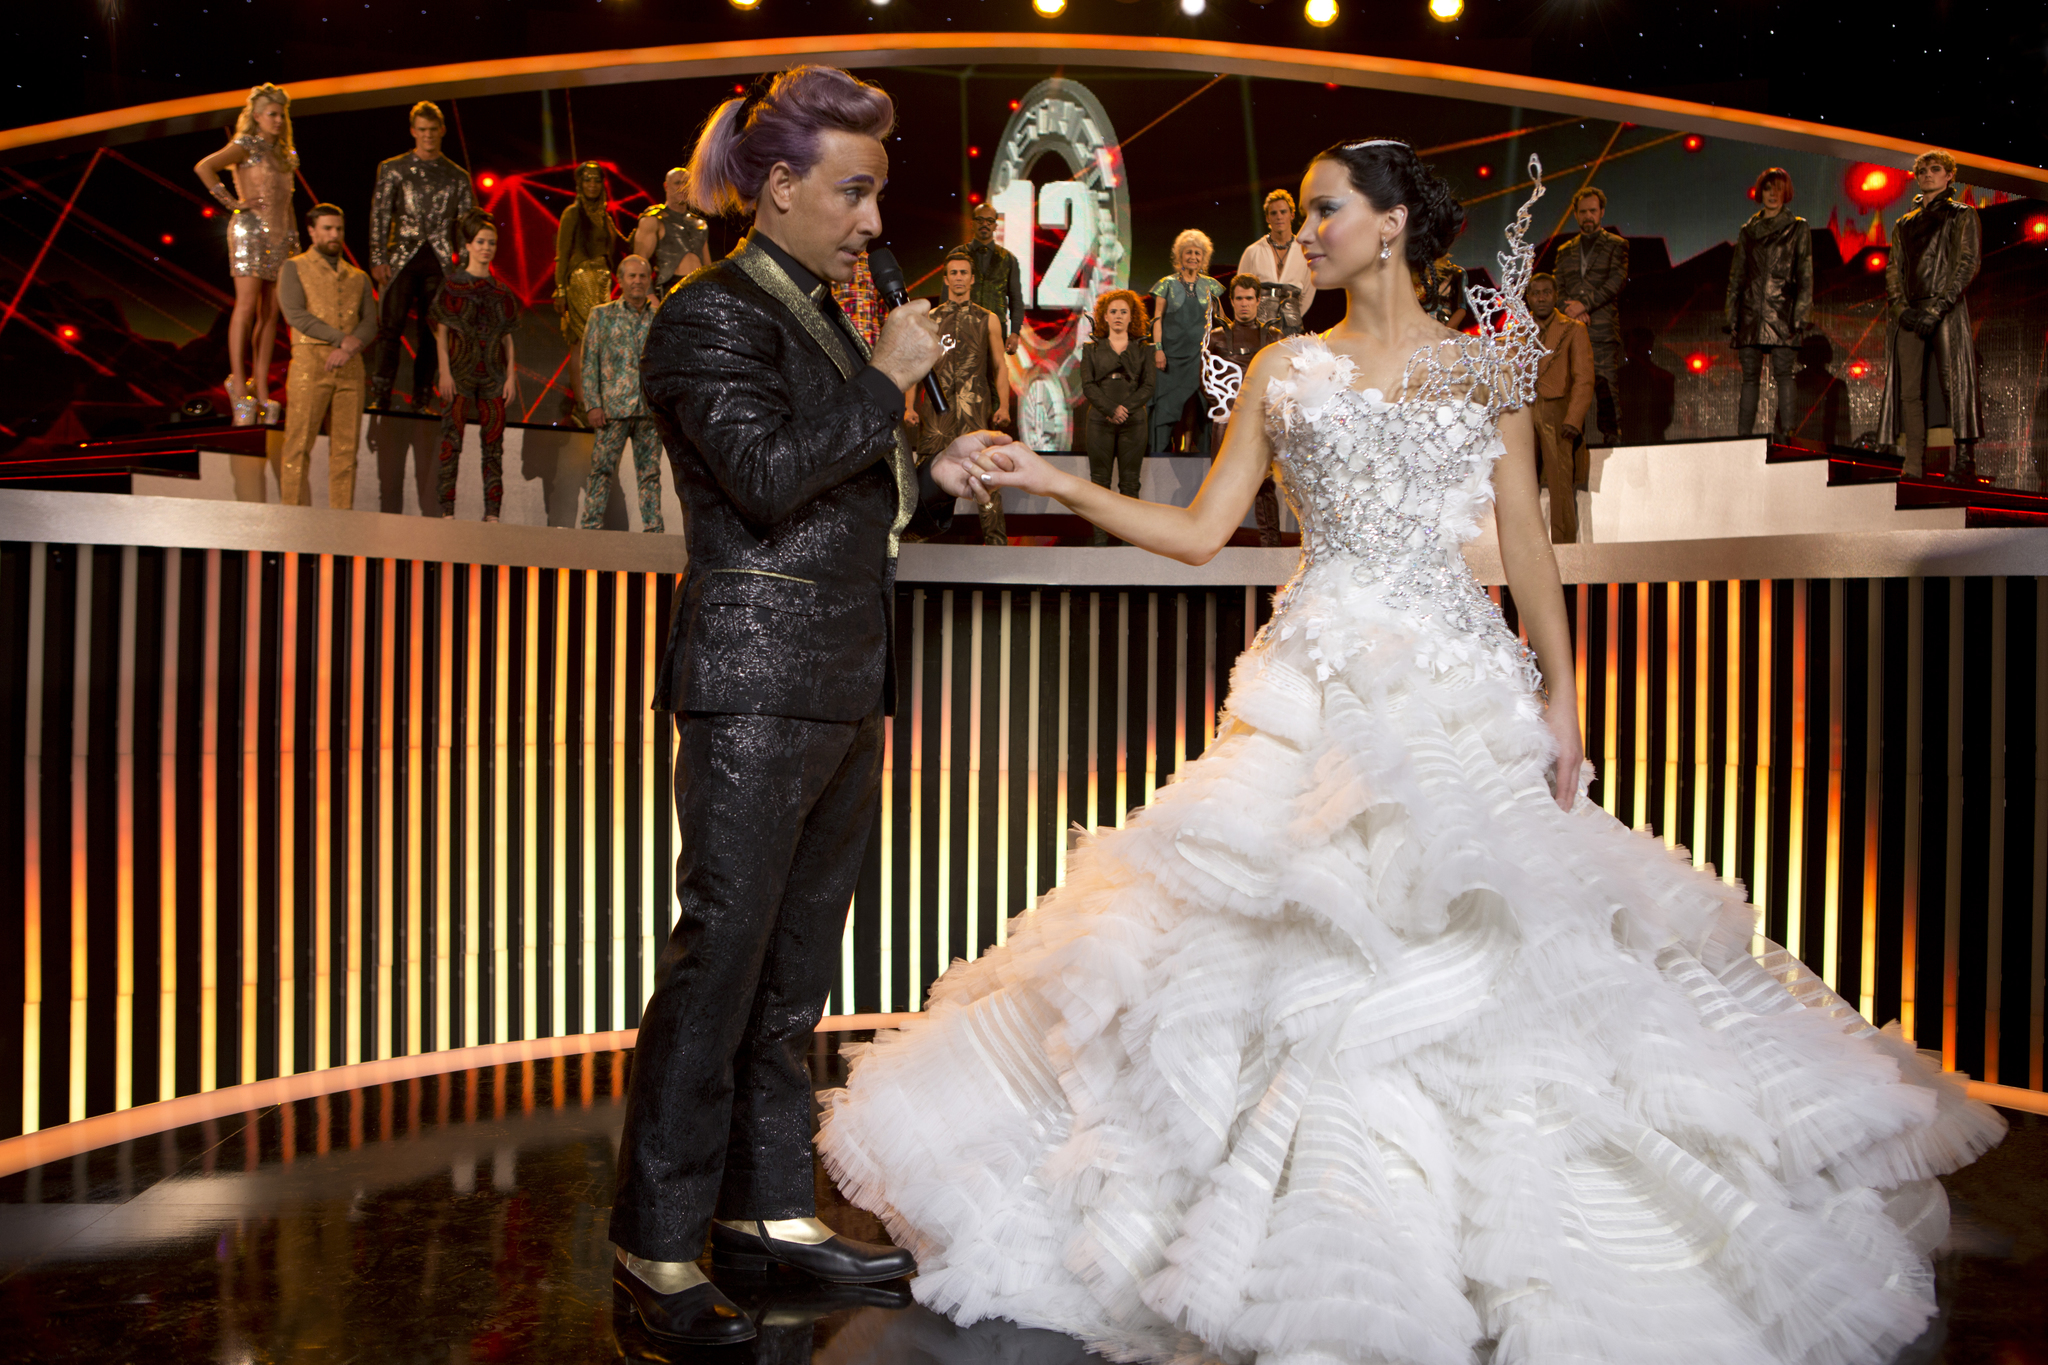 Stanley Tucci, Lynn Cohen, Bruno Gunn, Meta Golding, Megan Hayes, E. Roger Mitchell, Alan Ritchson, Stephanie Leigh Schlund, Jennifer Lawrence, and Sam Claflin in The Hunger Games: Catching Fire (2013)